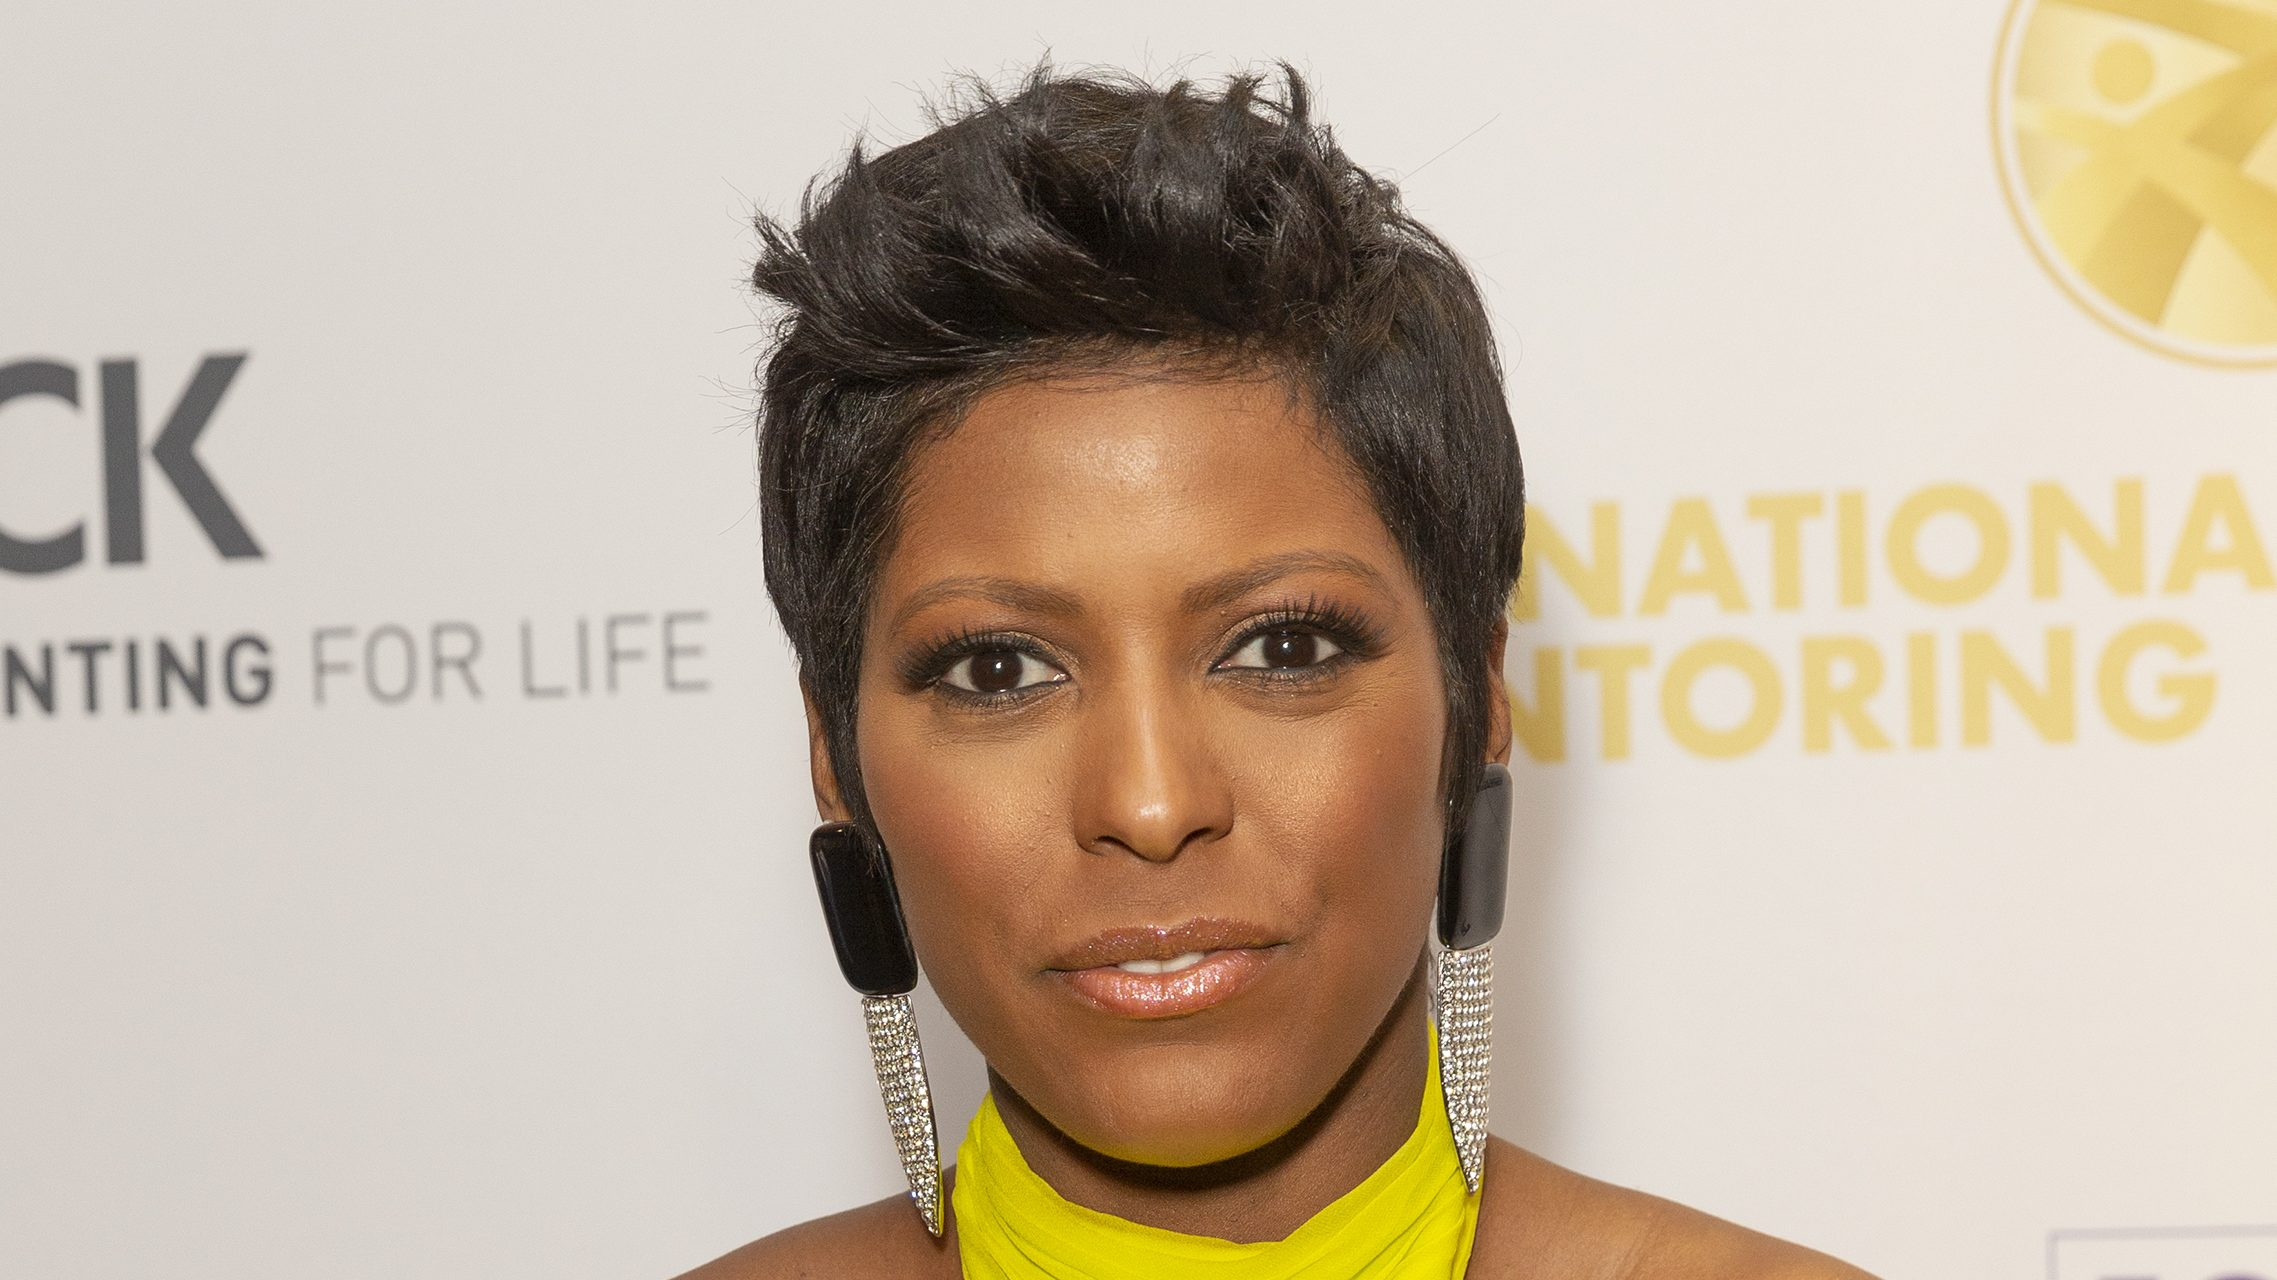 Tamron Hall Reveals How Leaving 'Today' Changed Everything: 'You've Got to Persevere'